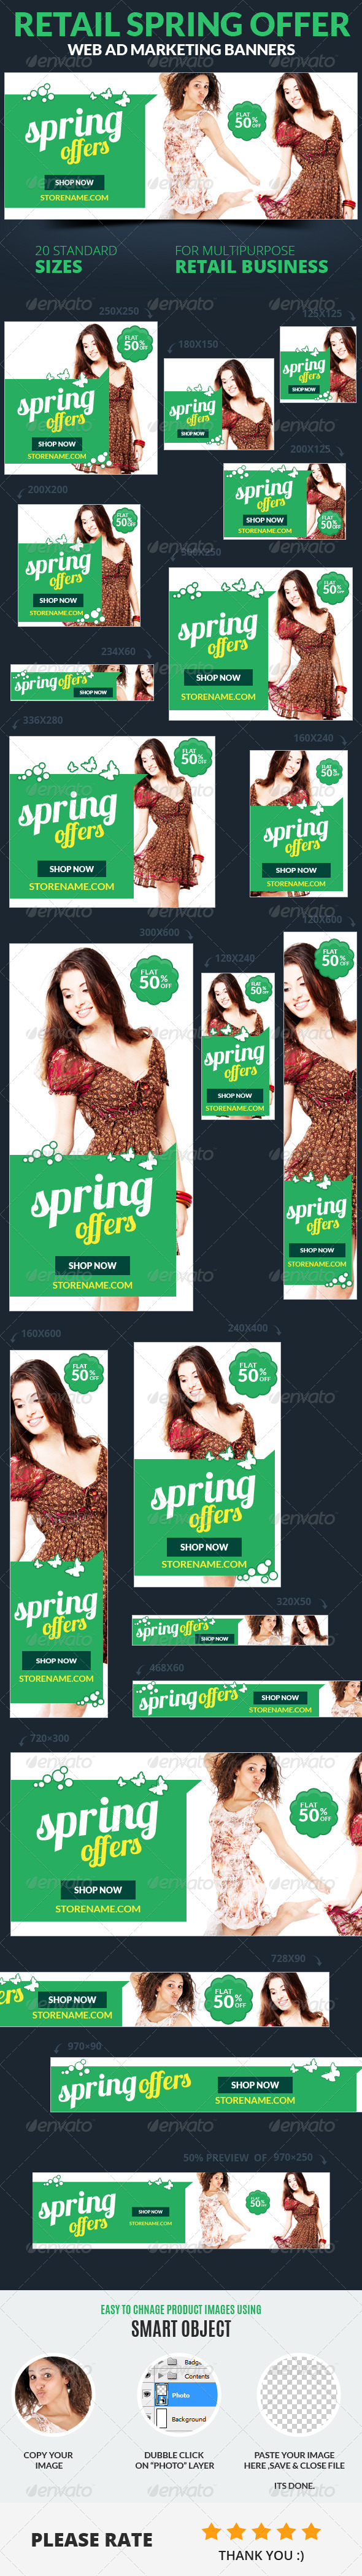 Retail Spring Offer Web Ad Marketing Banners - Banners & Ads Web Elements